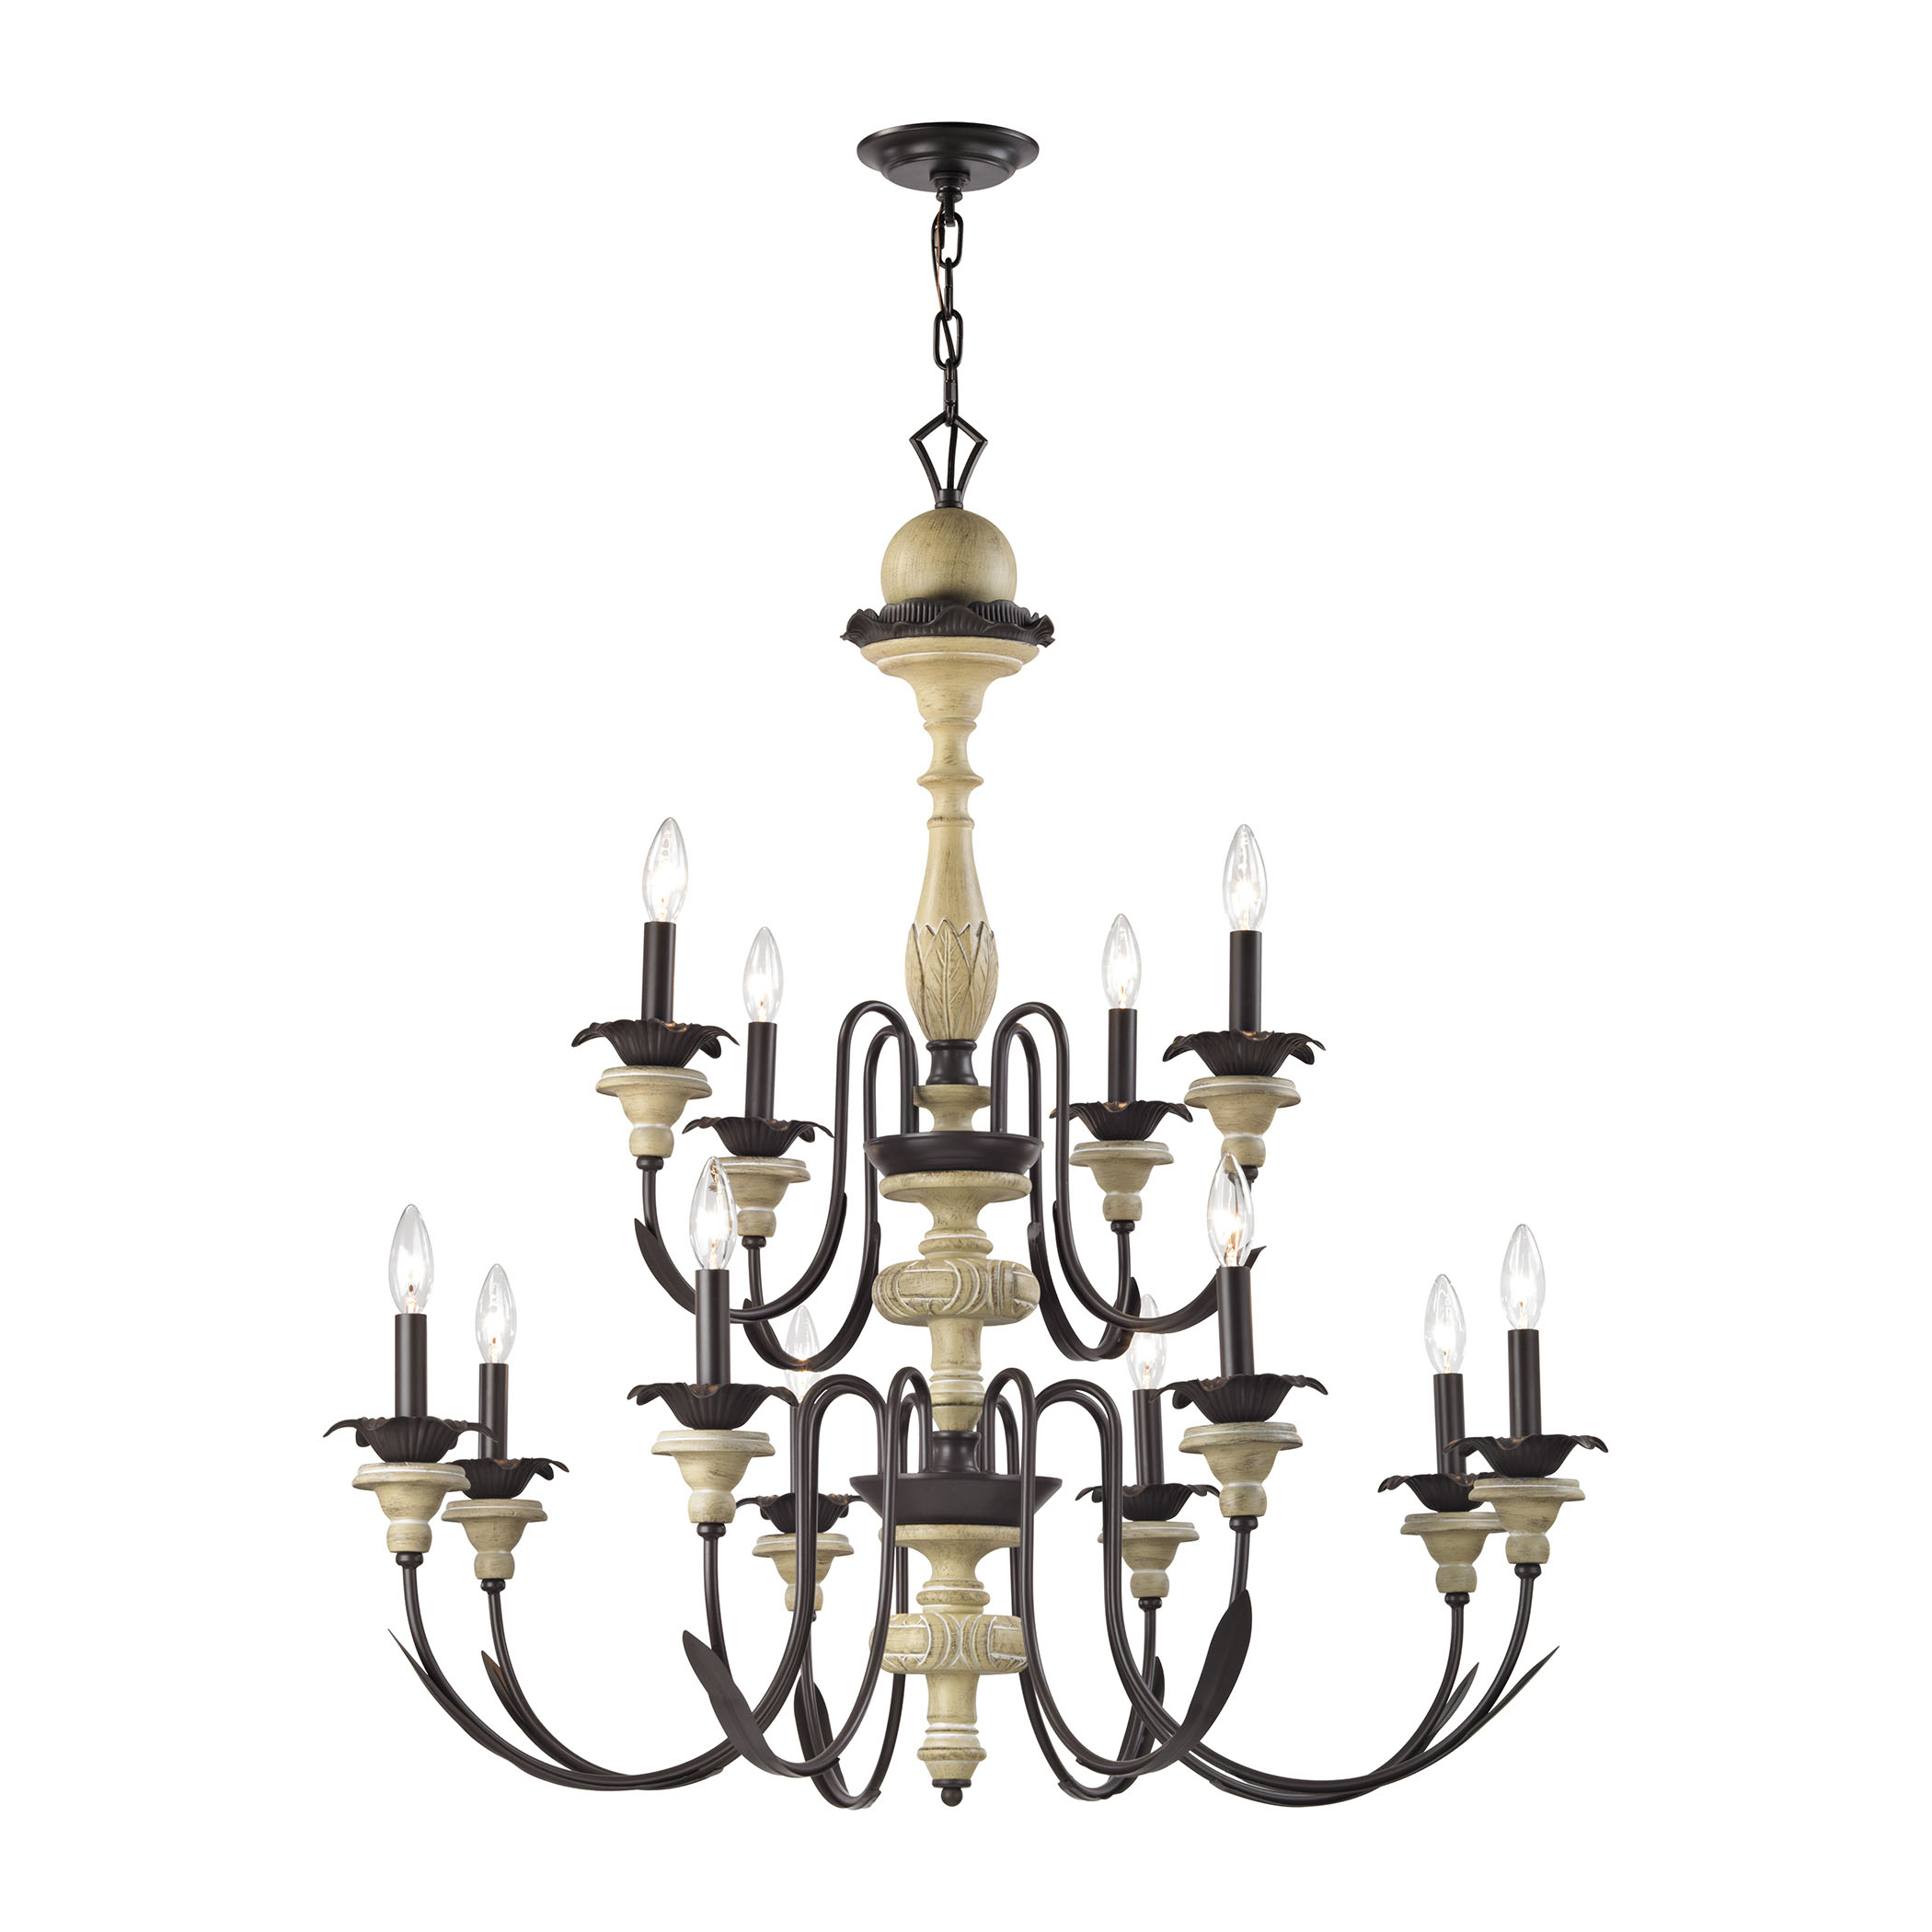 2 light chandelier in aged cream oil rubbed bronze dynamichome 2 light chandelier in aged cream oil rubbed bronze dynamichome chandelier lighting mozeypictures Images